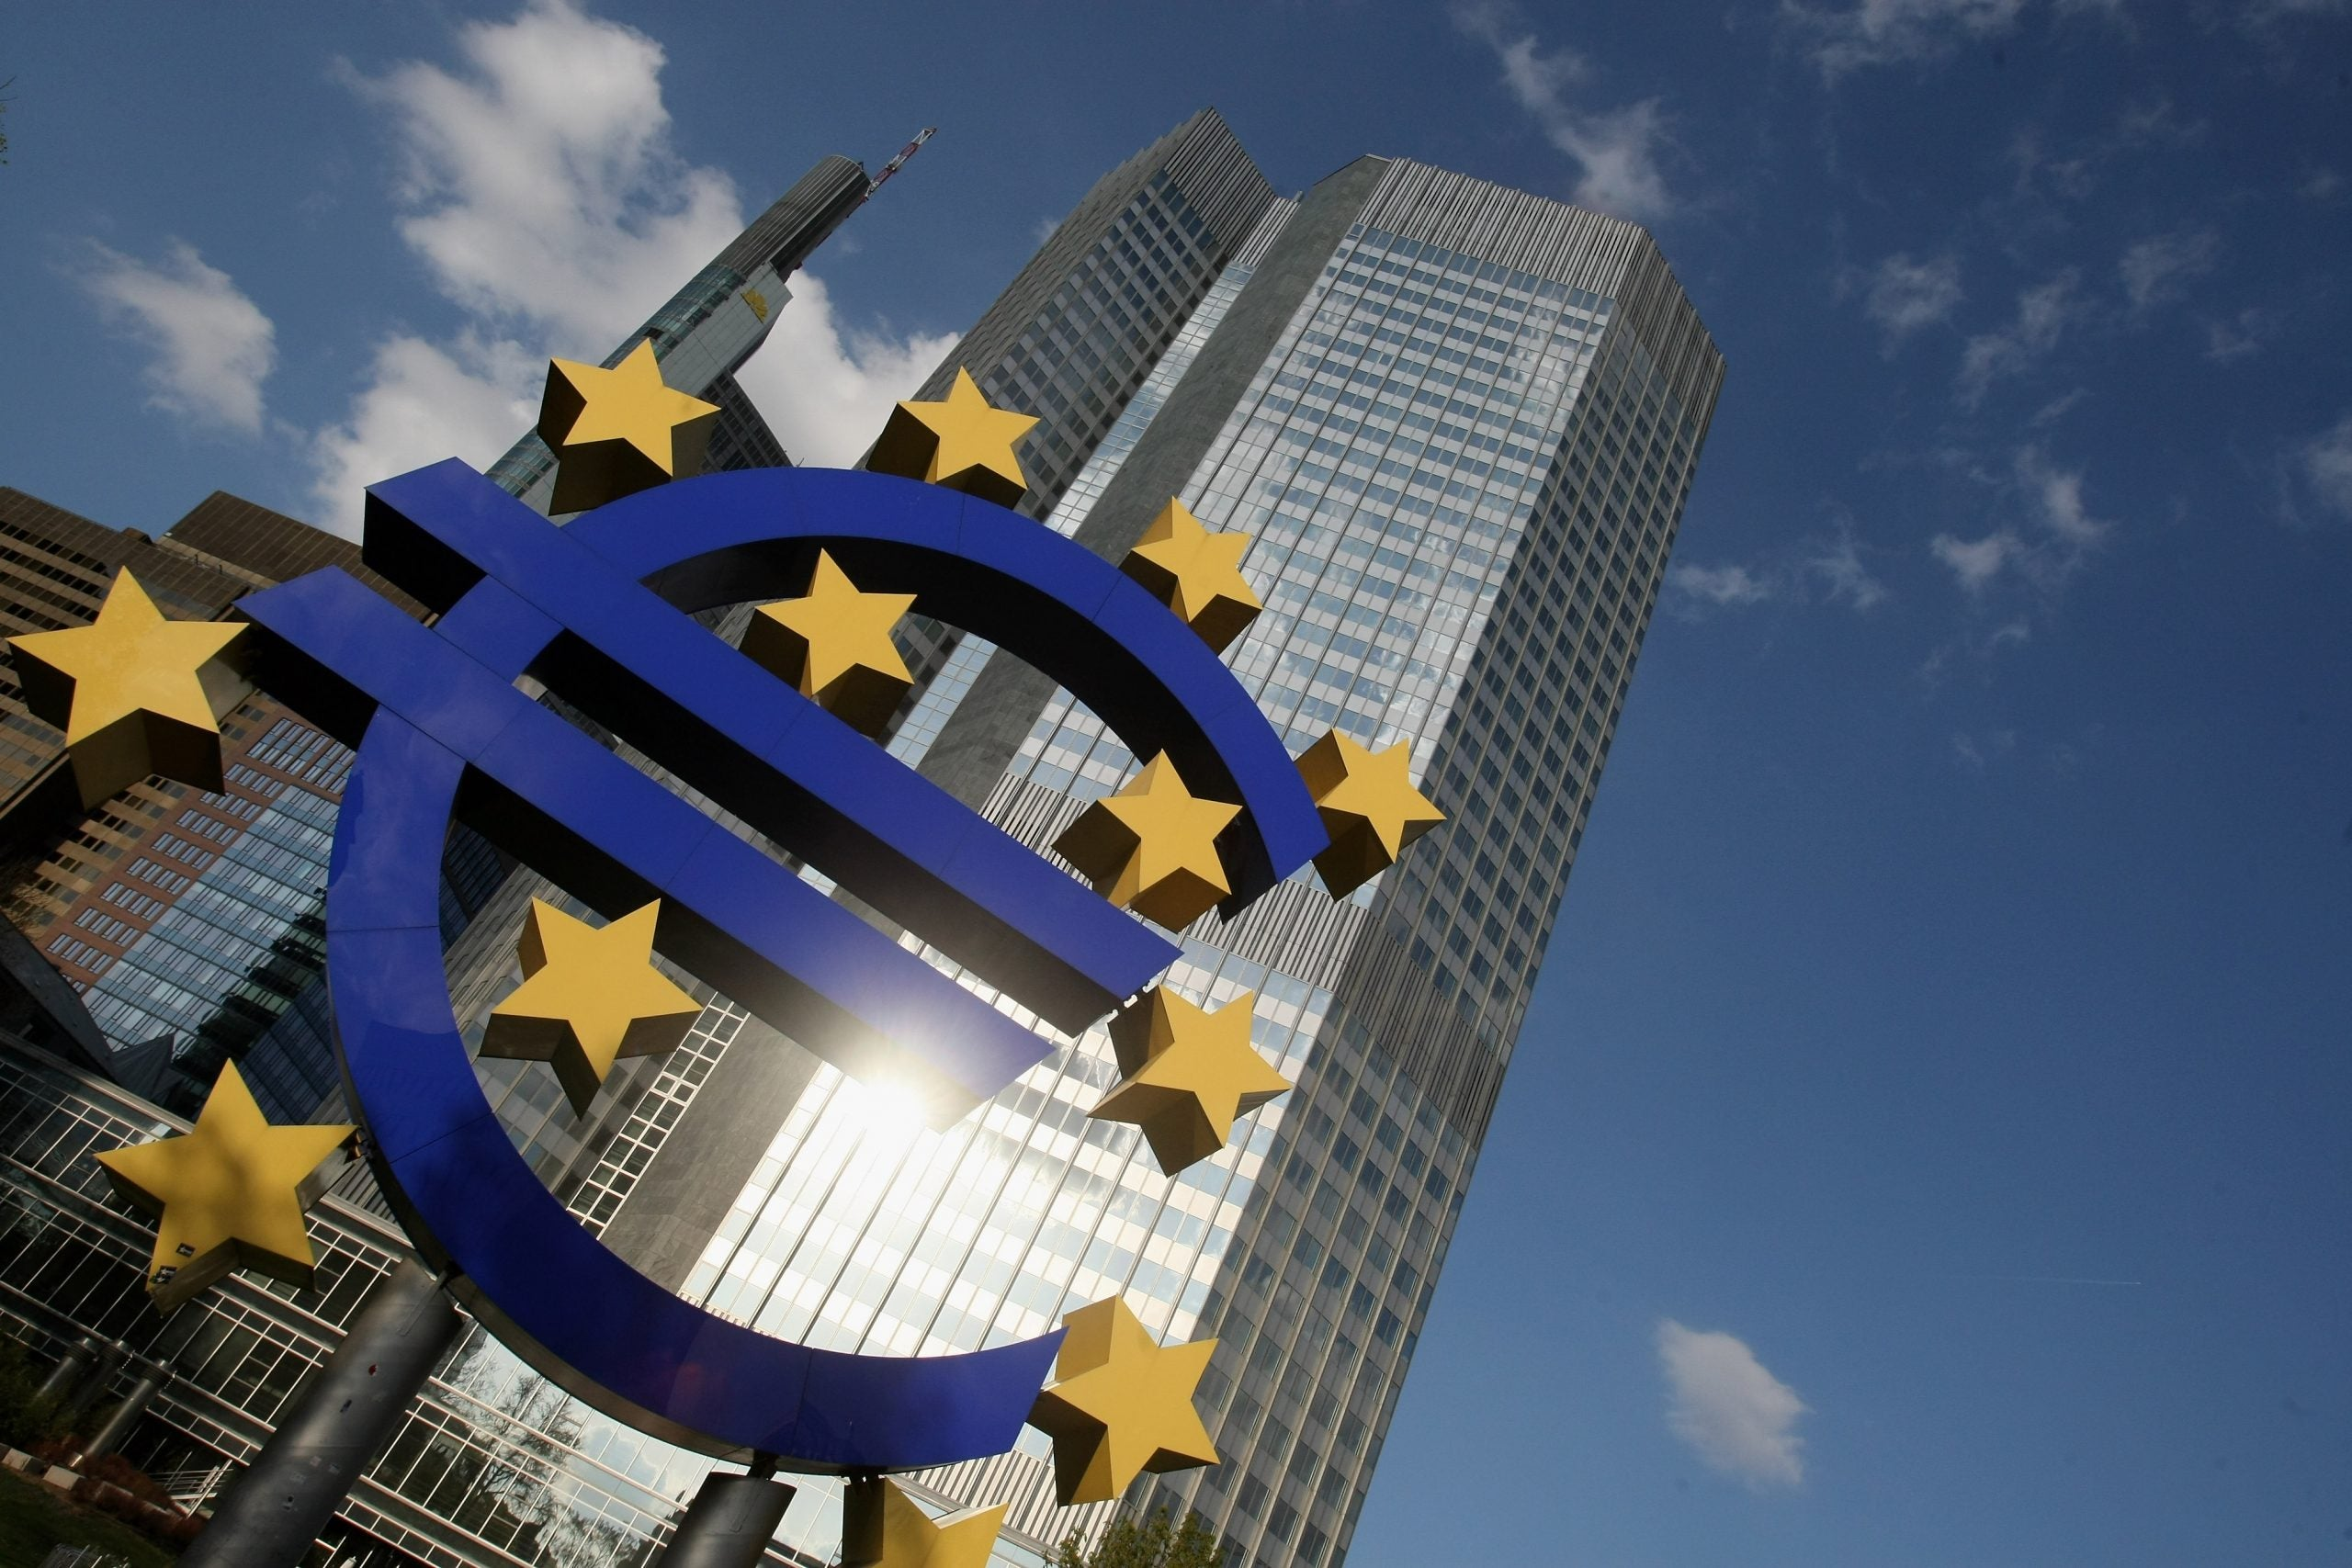 As another Eurozone recession looms, the failure of austerity is clearer than ever